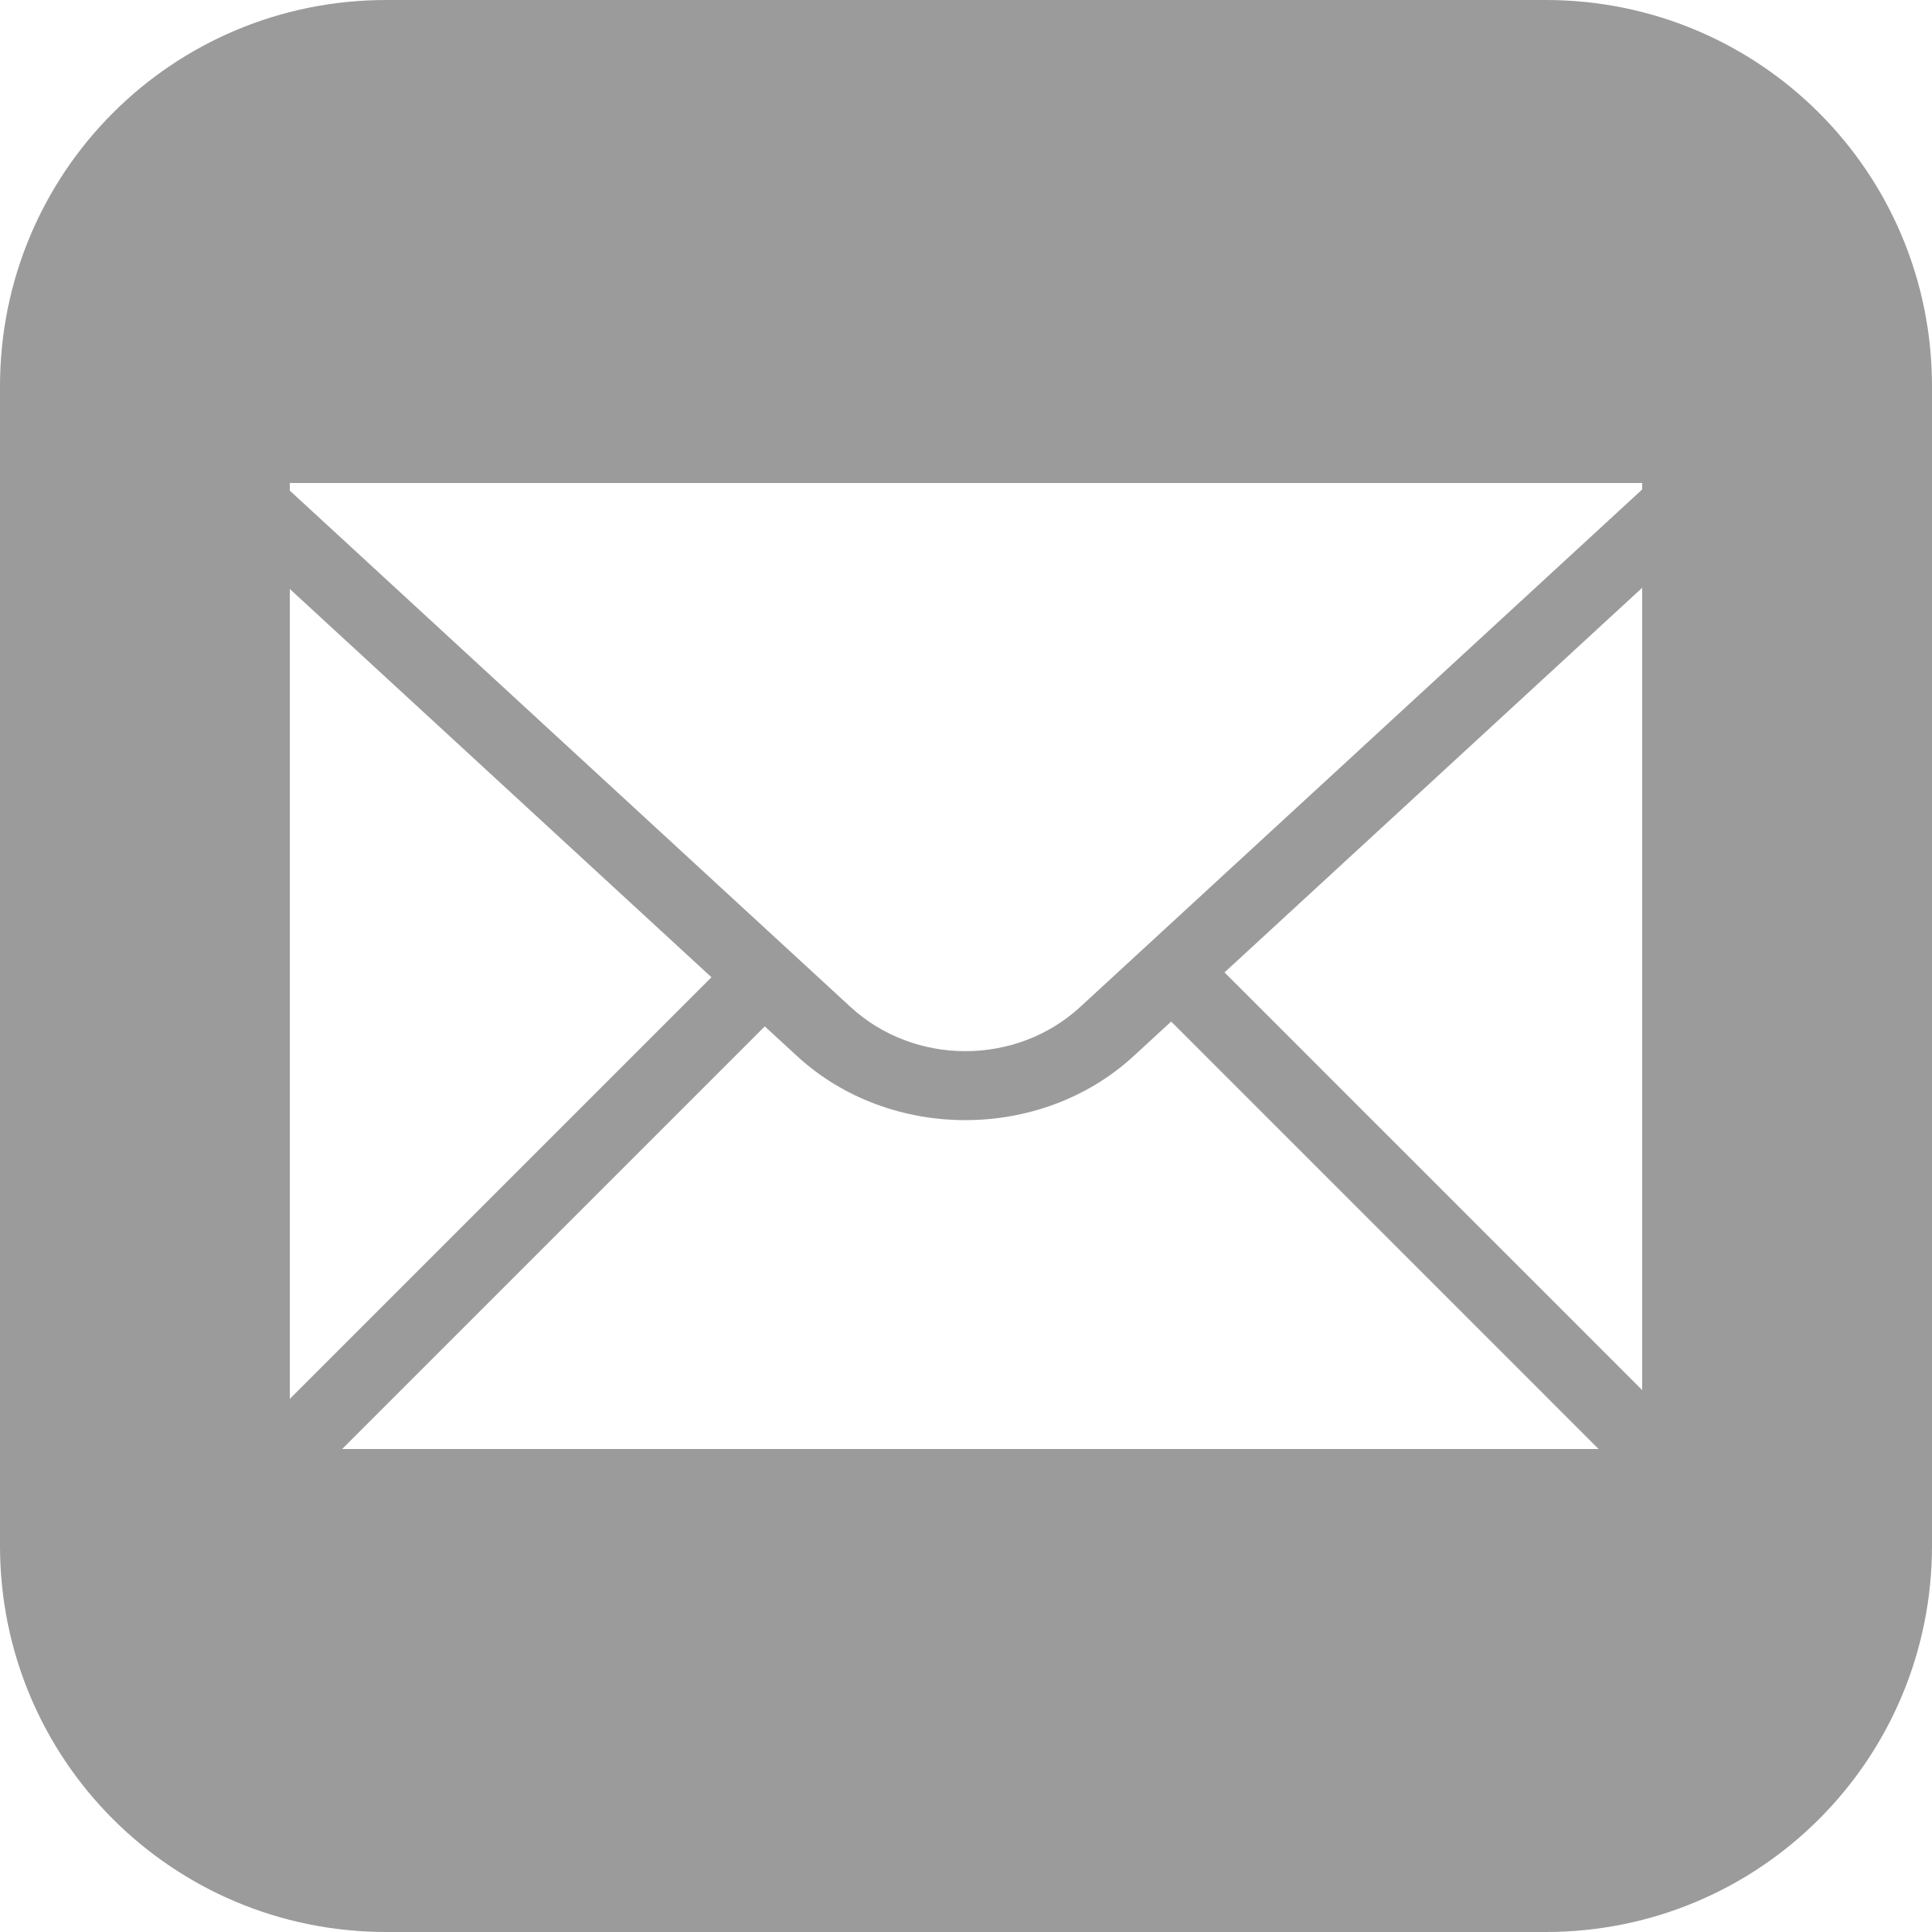 Email sharing icons png. Mail clipart mail icon